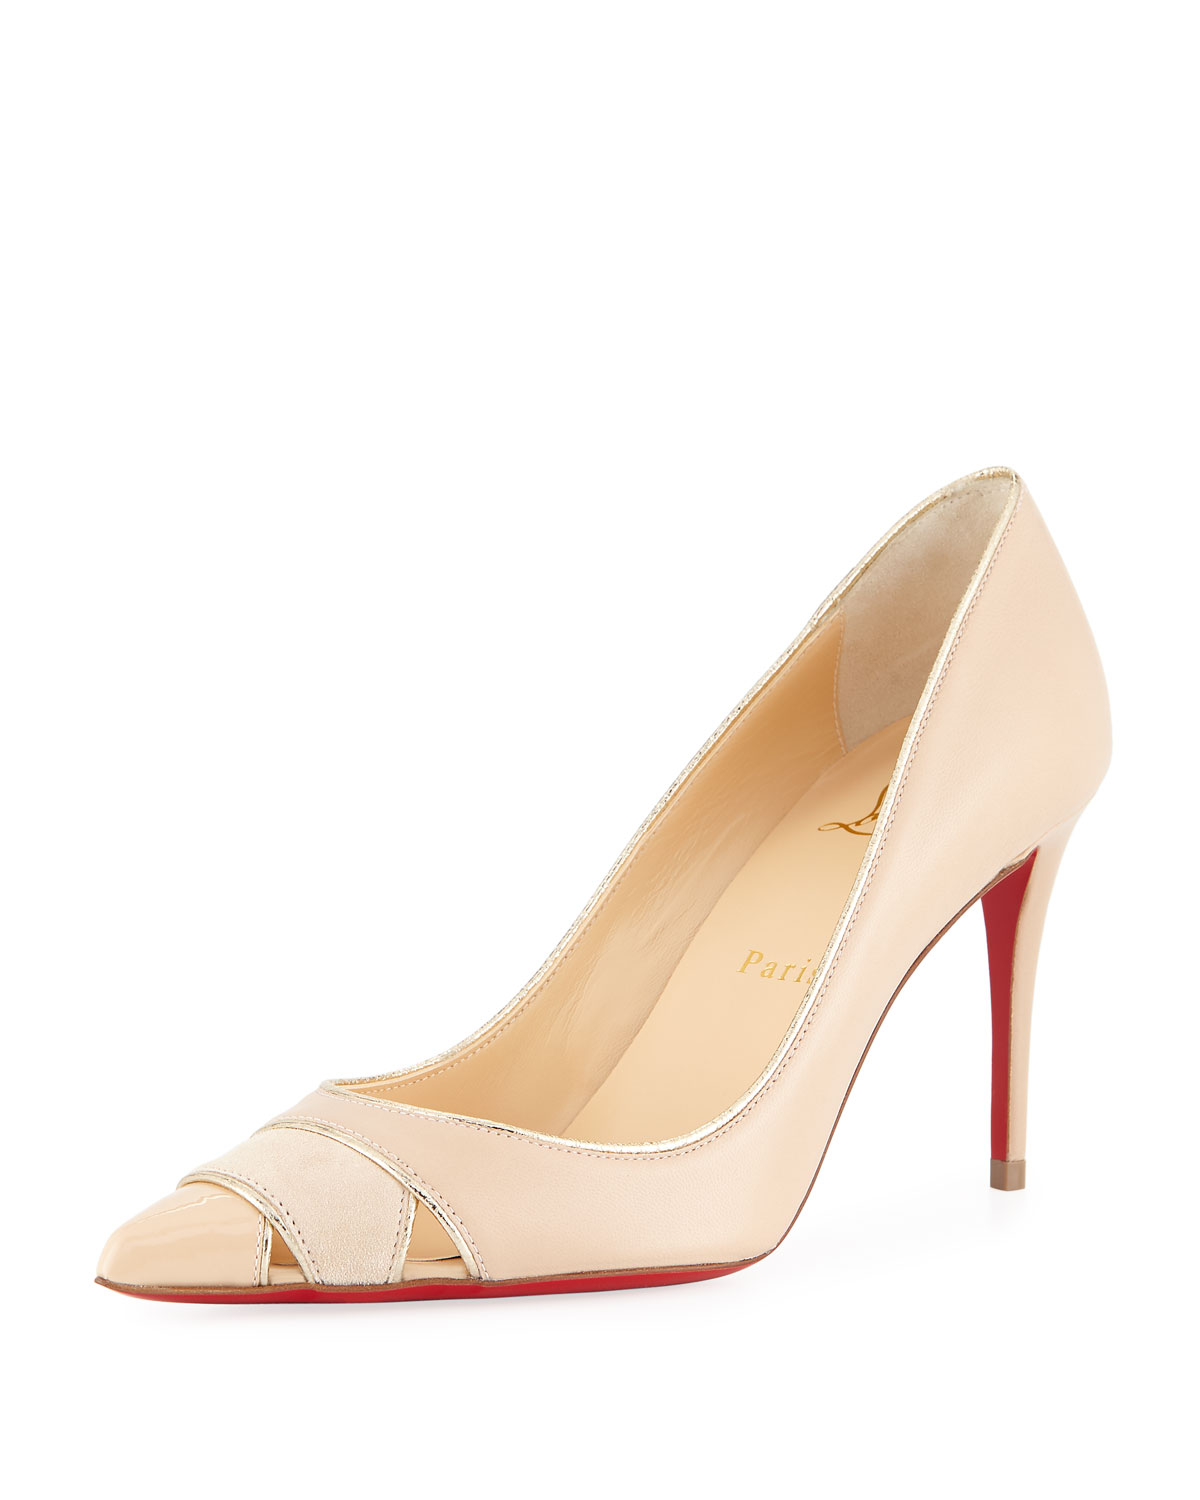 ad0769ac0d80 Christian Louboutin Biblio 85mm Piped Cutout Red Sole Pump